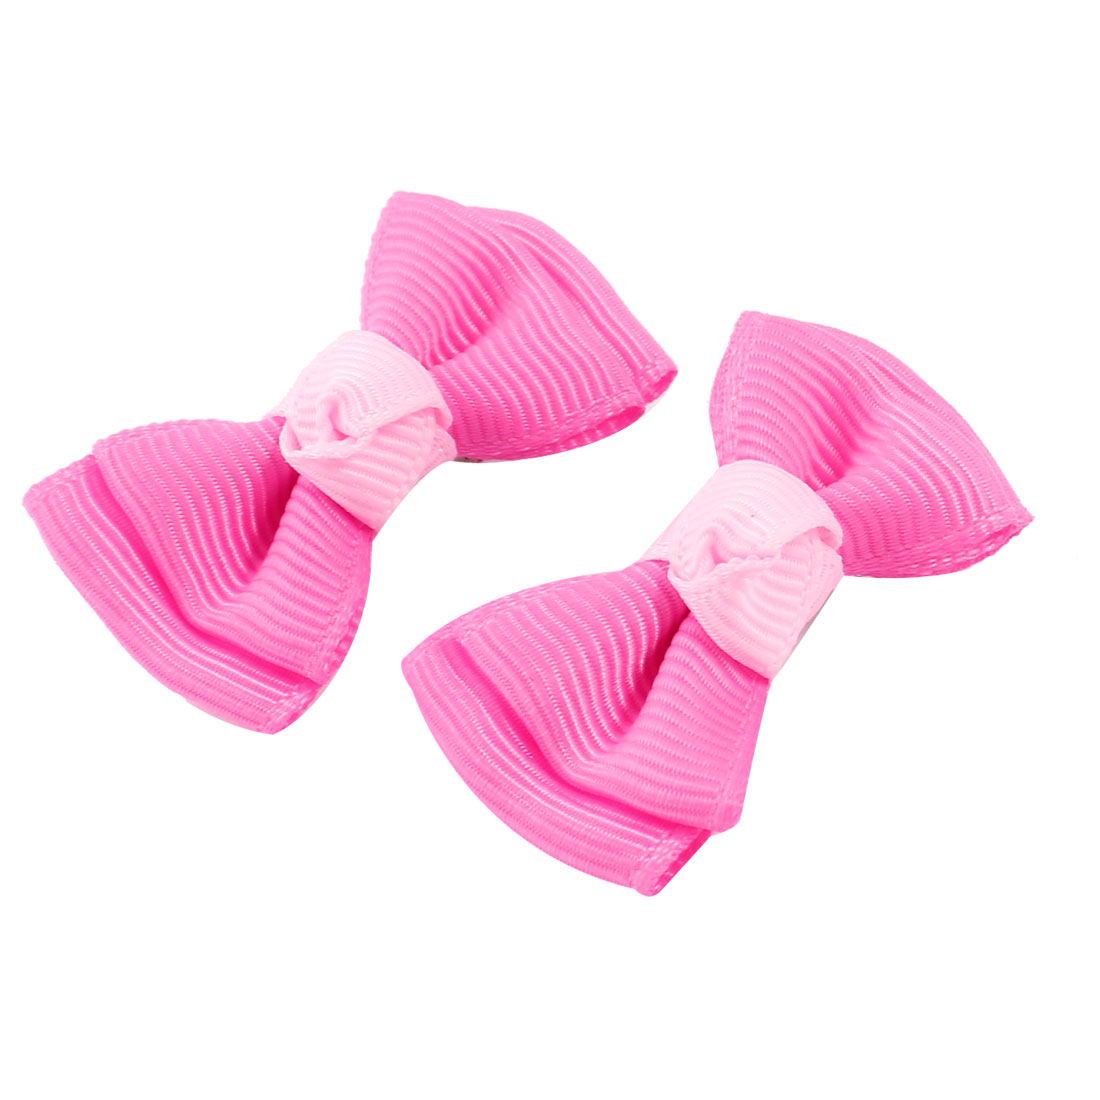 2pcs Fuchsia Nylon Double Layers Bowknot Accent Metallic Single Prong Alligator Hair Clip for Pet Cat Dog Puppy